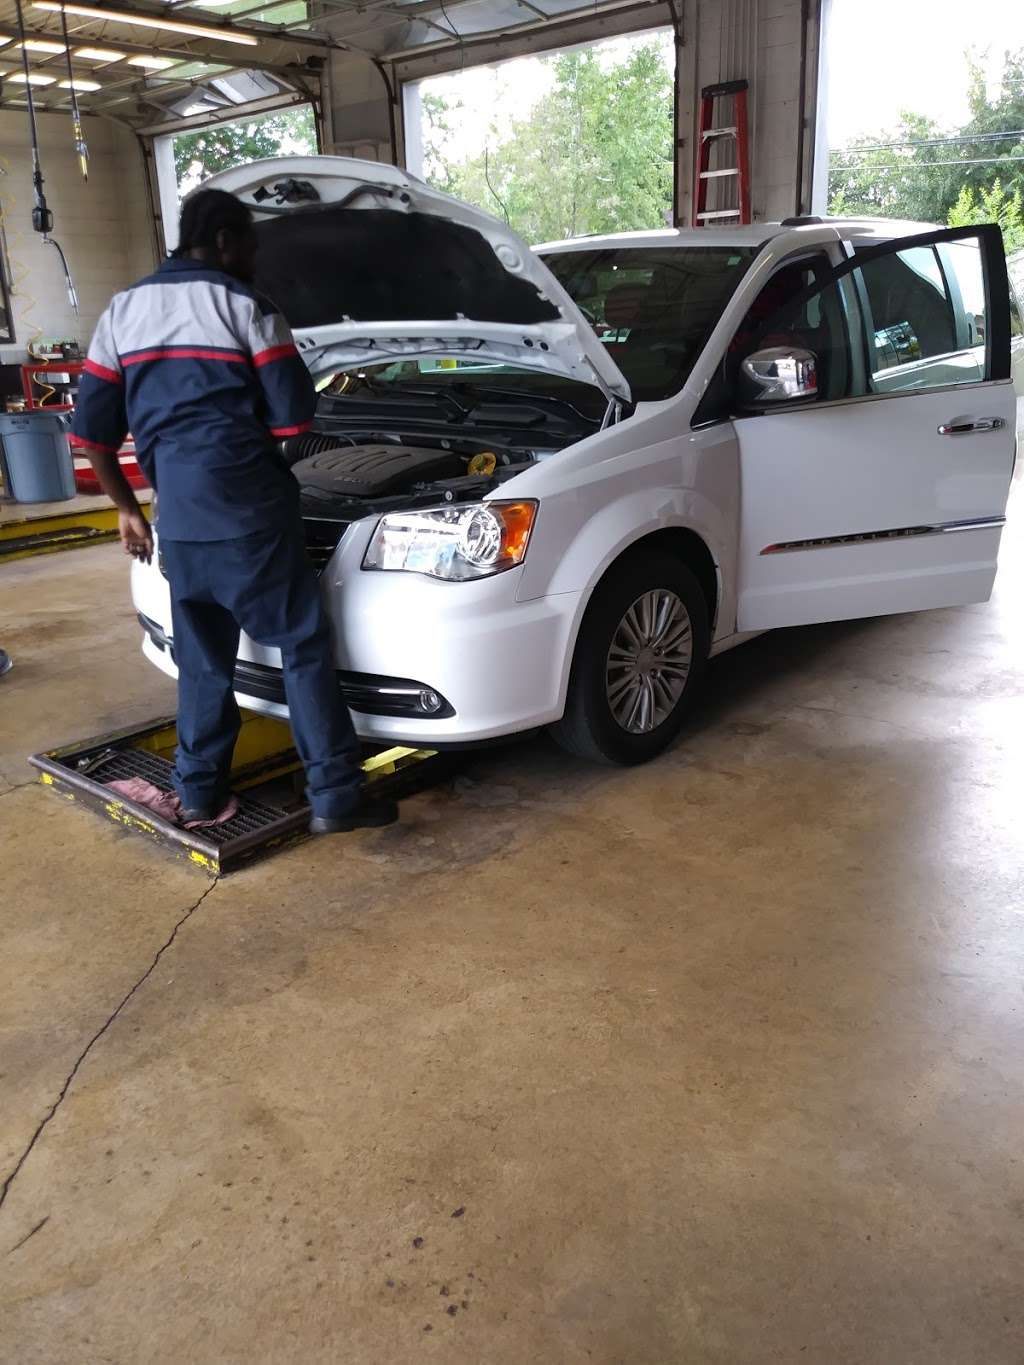 Valvoline Instant Oil Change - car repair  | Photo 6 of 6 | Address: 11328 S Halsted St, Chicago, IL 60628, USA | Phone: (773) 928-1600